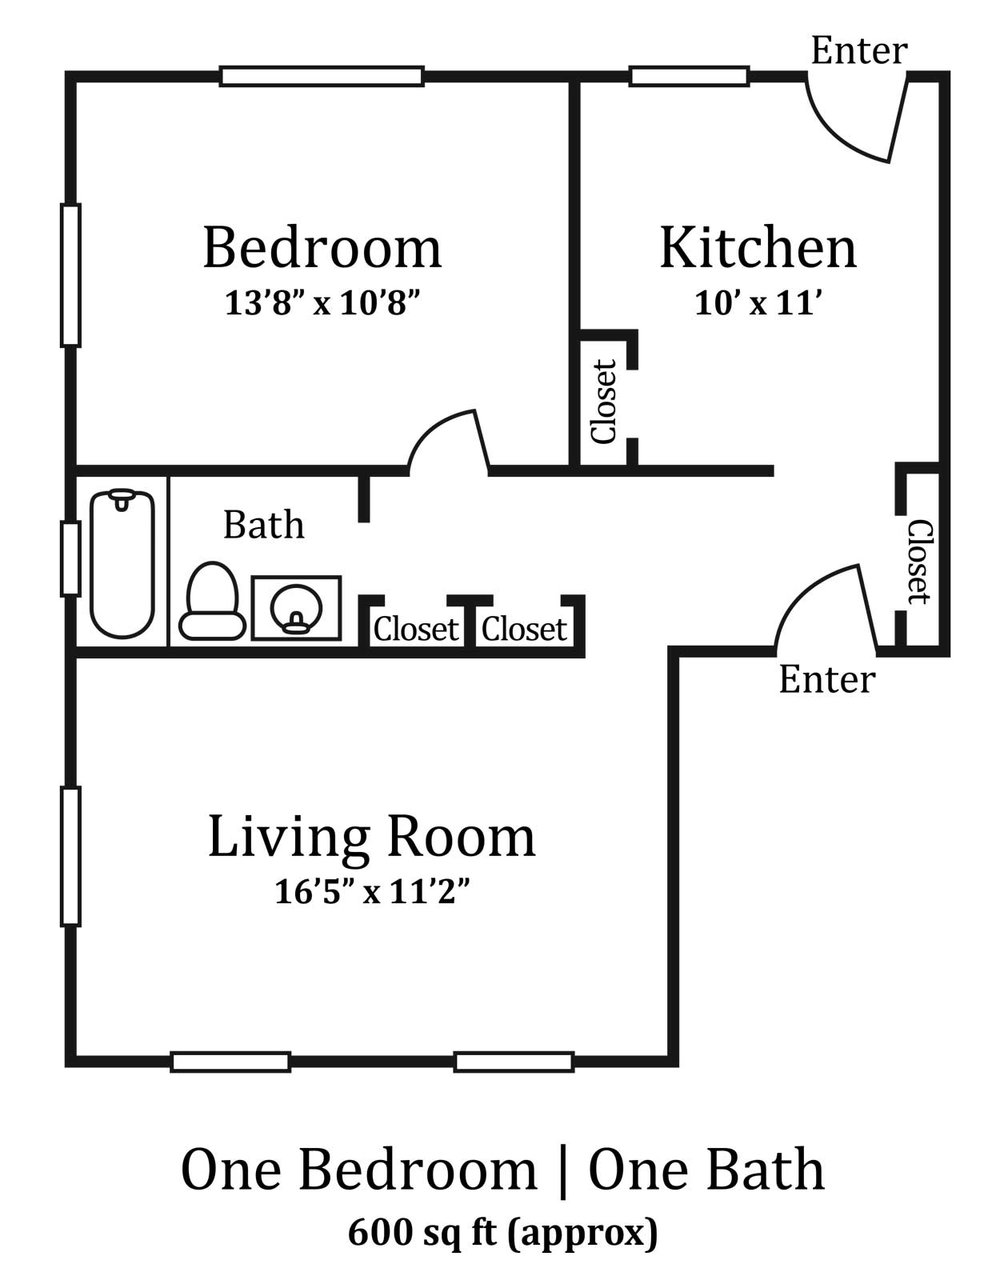 Marine-Gardens-One-Bedroom-Floor-Plan.jpg